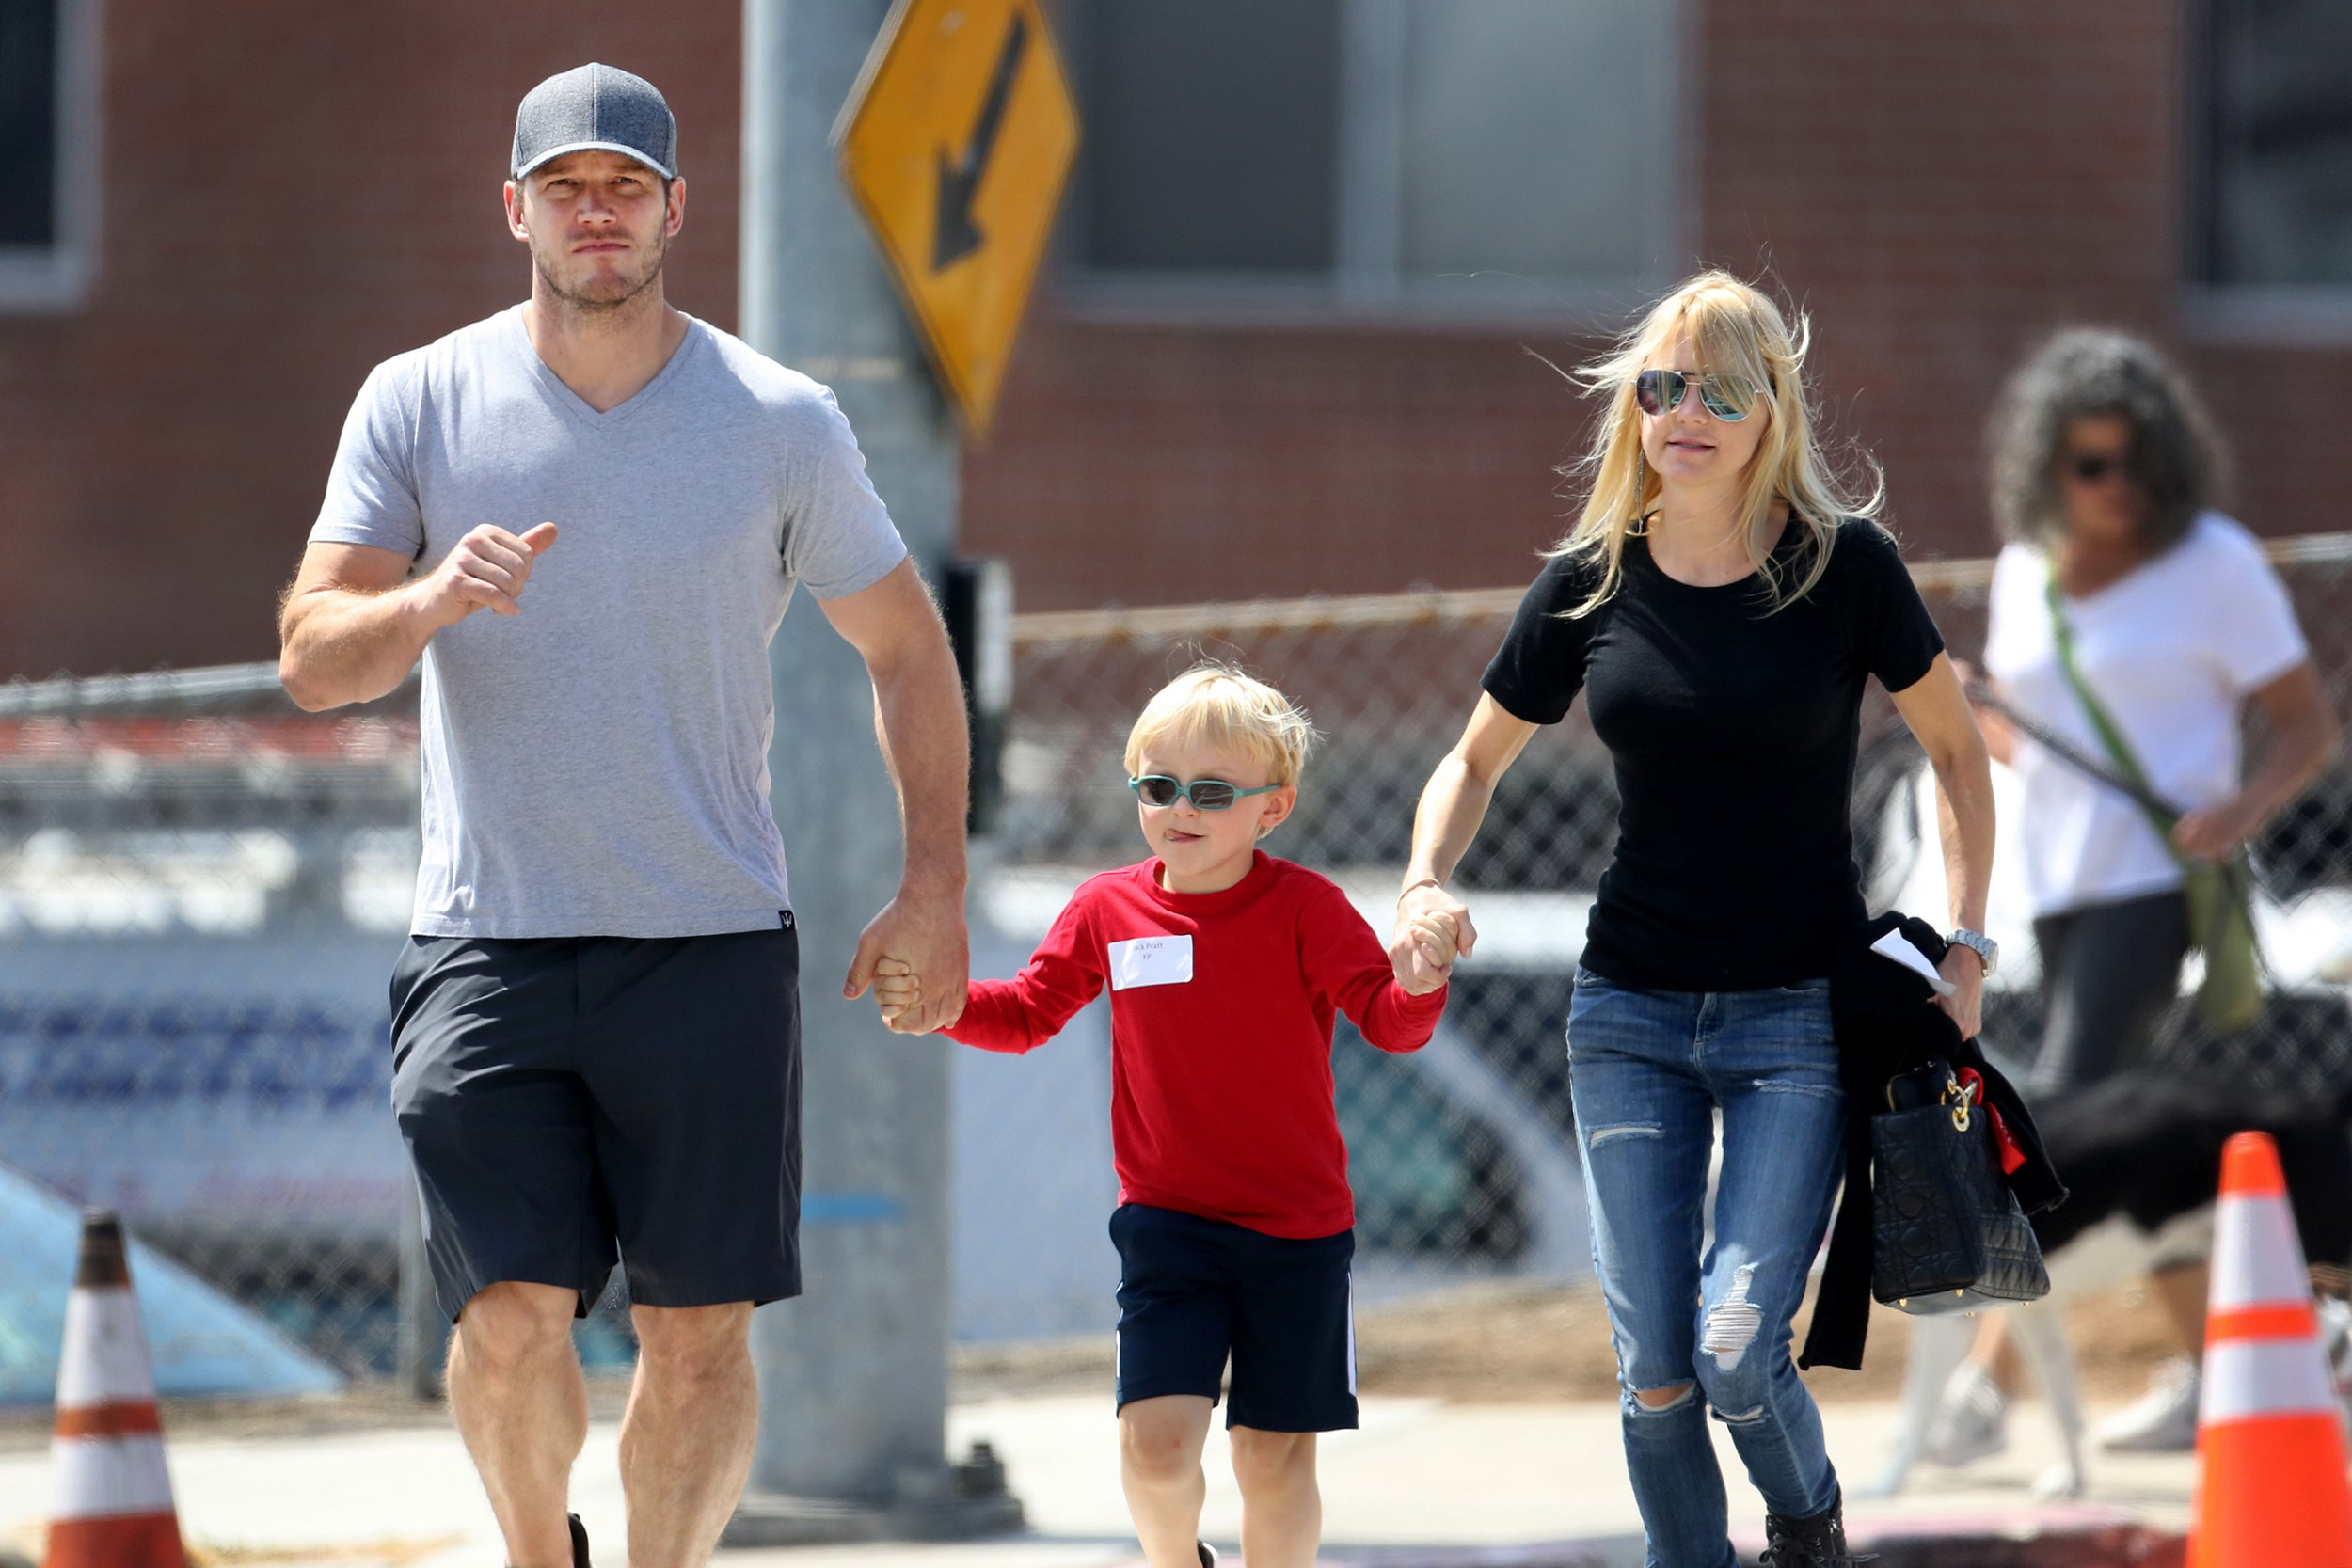 EXCLUSIVE: Christ Pratt takes son and ex Anna Faris for a walk in Santa Monica, CA. 27 Aug 2018 Pictured: Chris Pratt, Anna Faris and son. Photo credit: MB / MEGA TheMegaAgency.com +1 888 505 6342